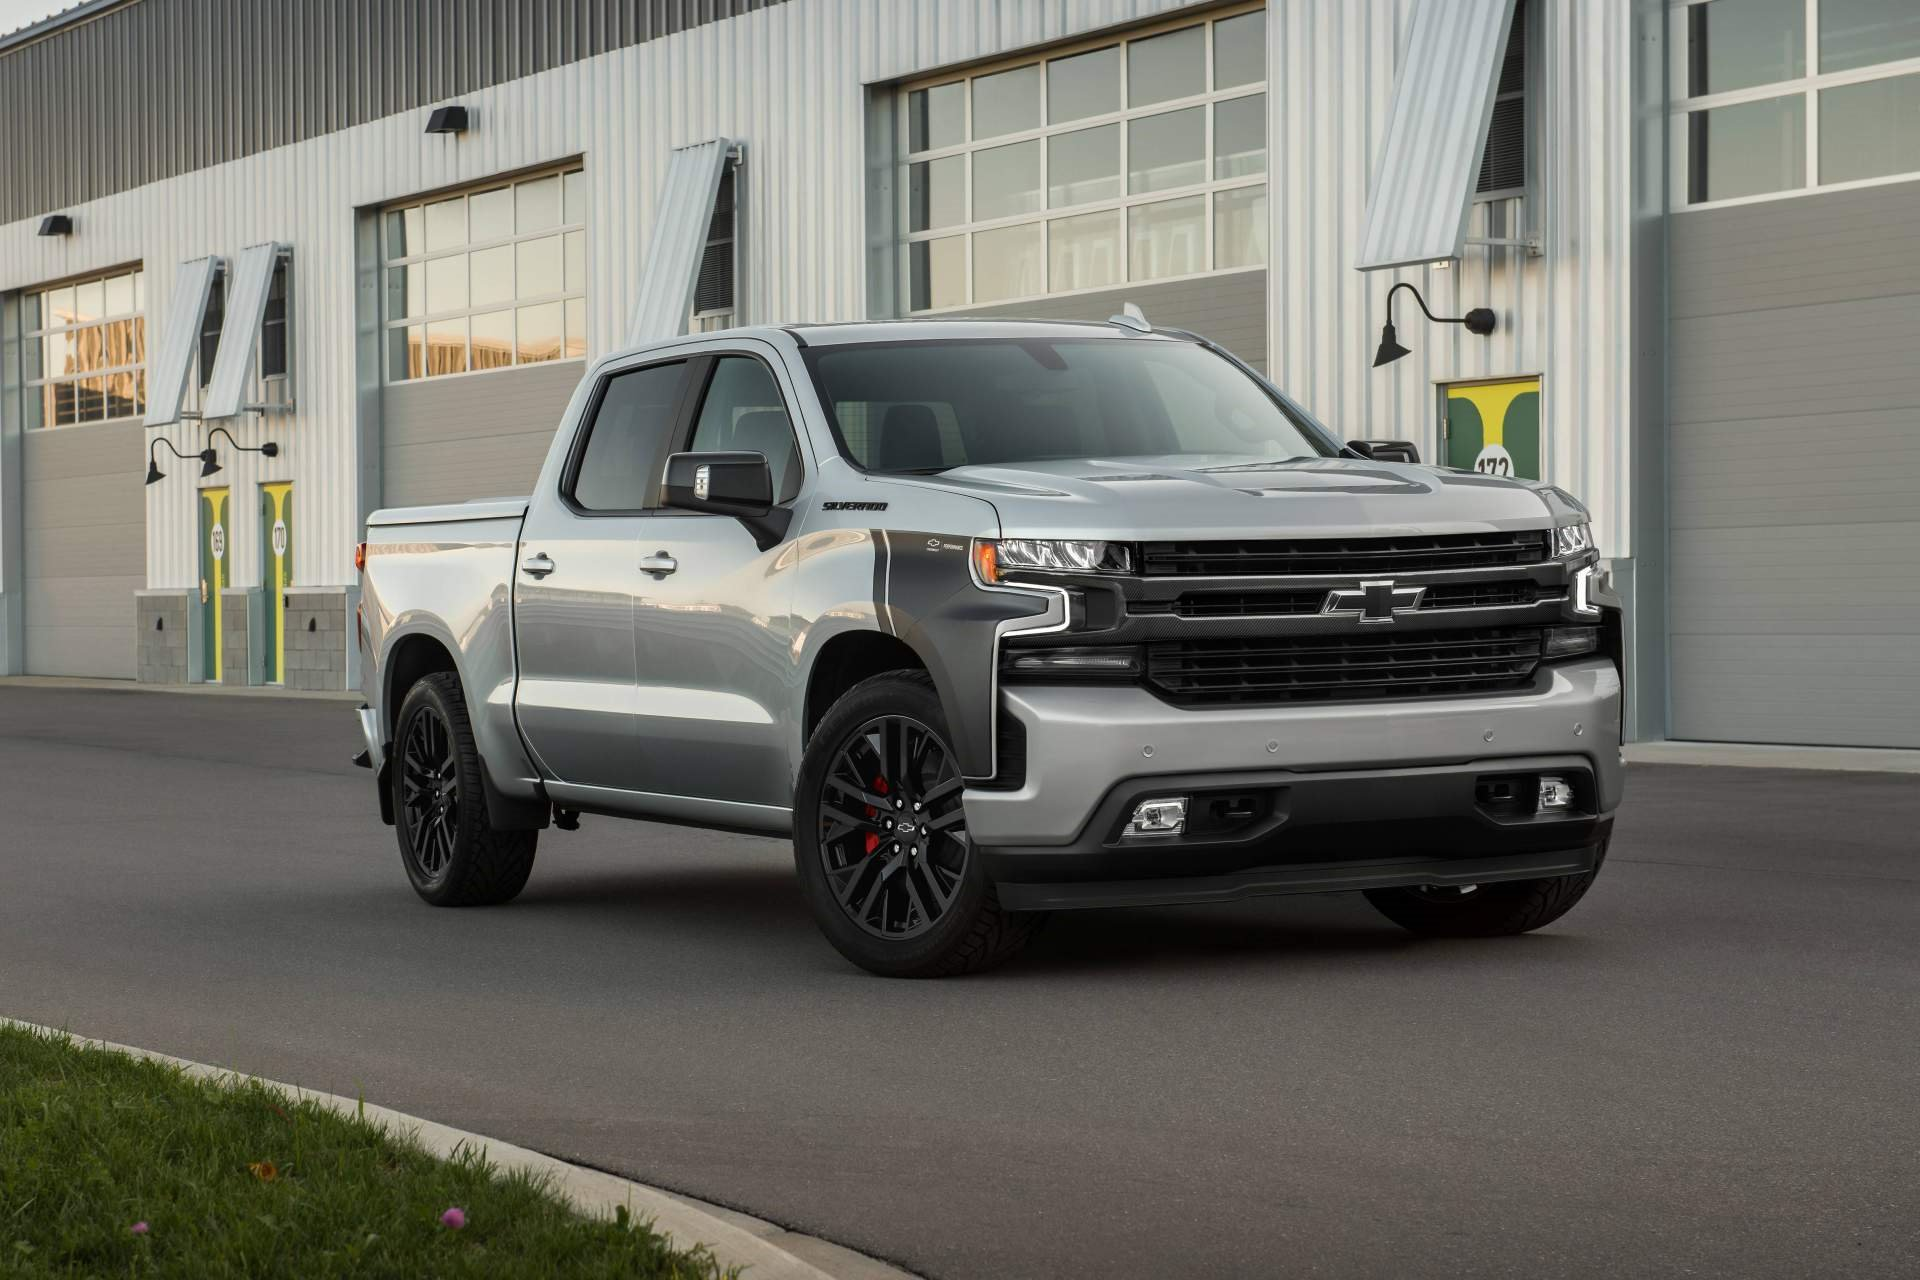 New 2019 Chevrolet-Silverado 2500HD LTZ Silverado 2500HD LTZ for sale $52,900 at M and V Leasing in Brooklyn NY 11223 1